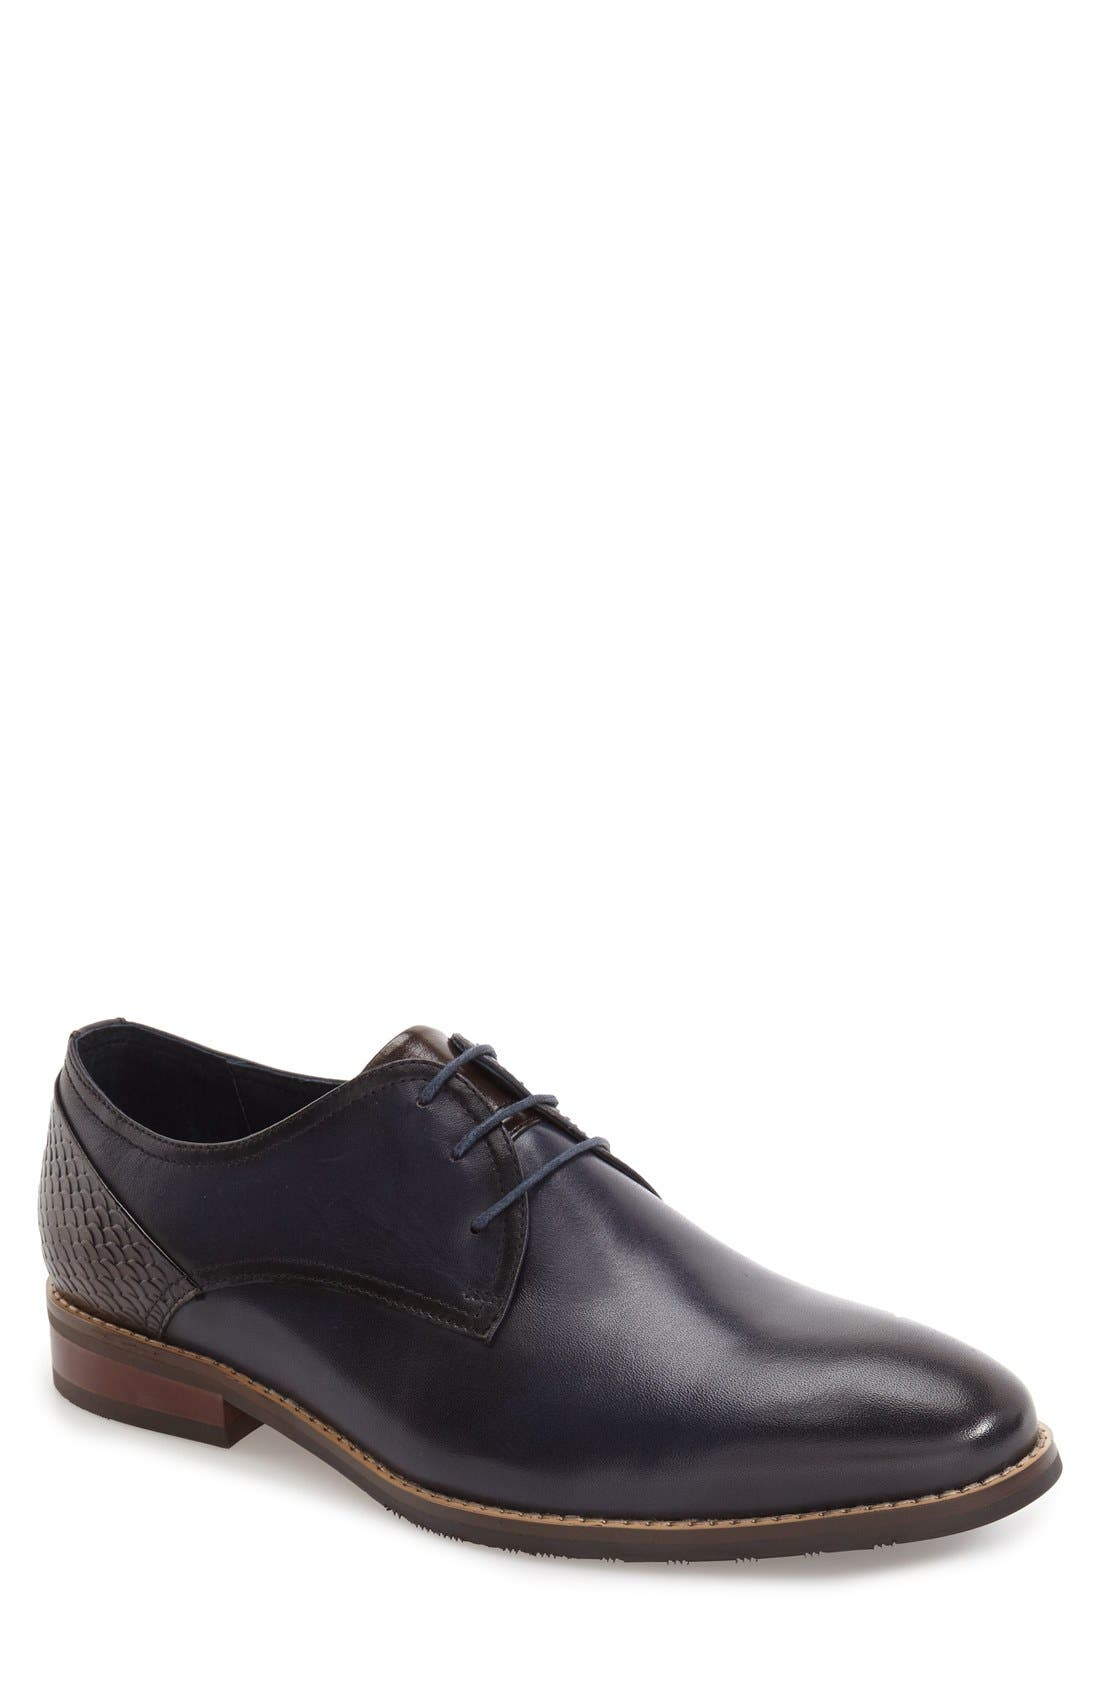 HART SCHAFFNER MARX 'SEATTLE' PLAIN TOE DERBY